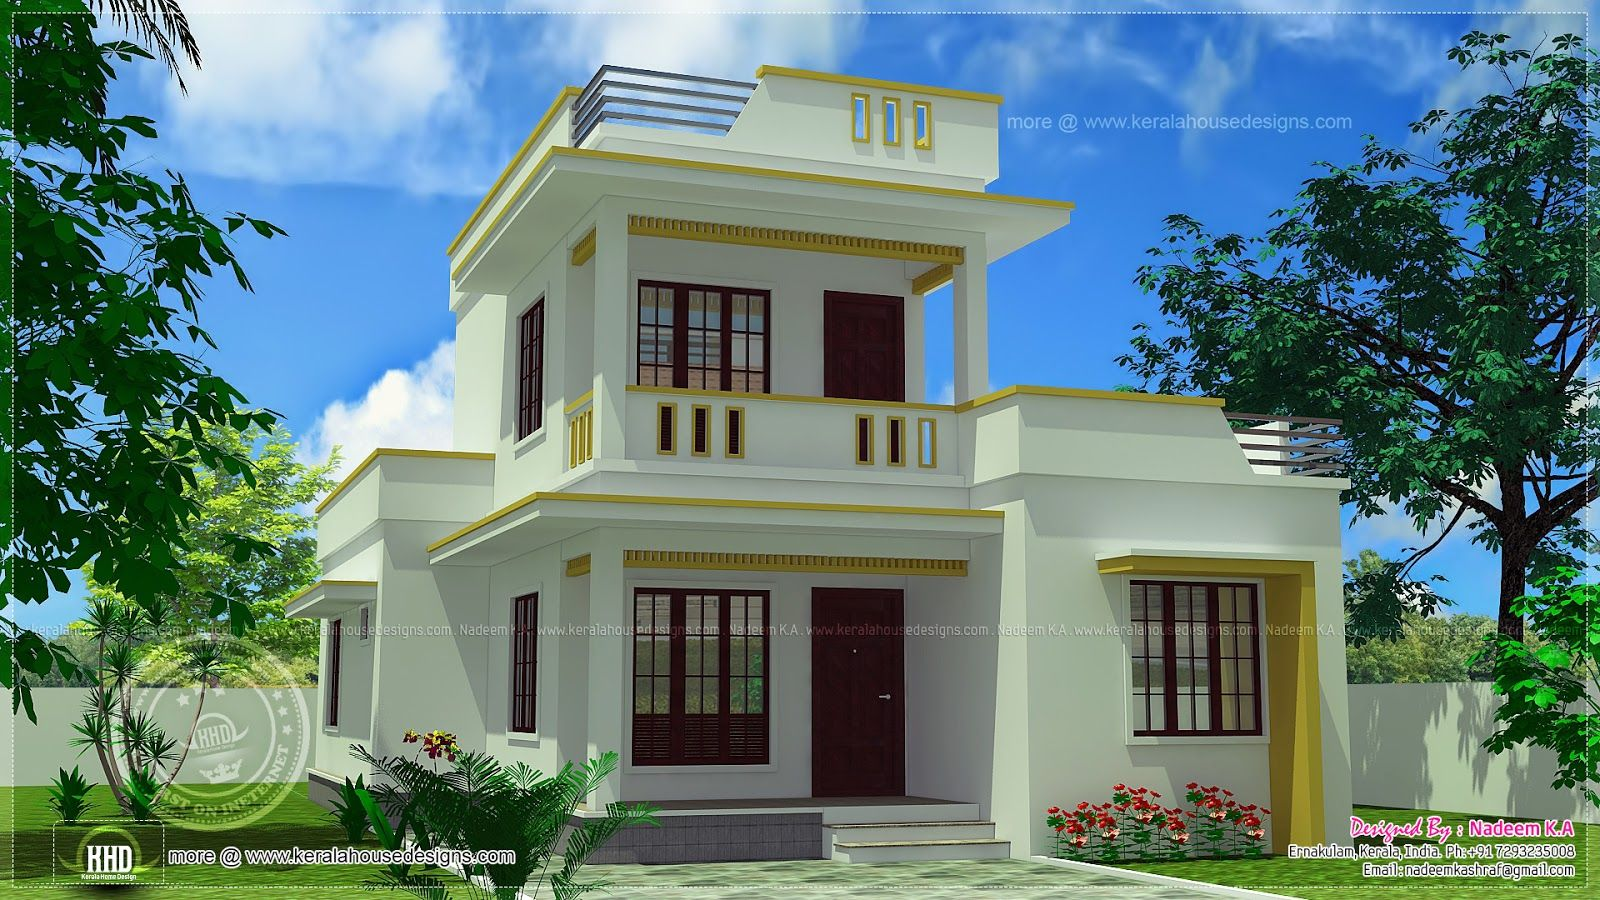 Roof home design feet kerala plans simple modern house for Www homedesign com